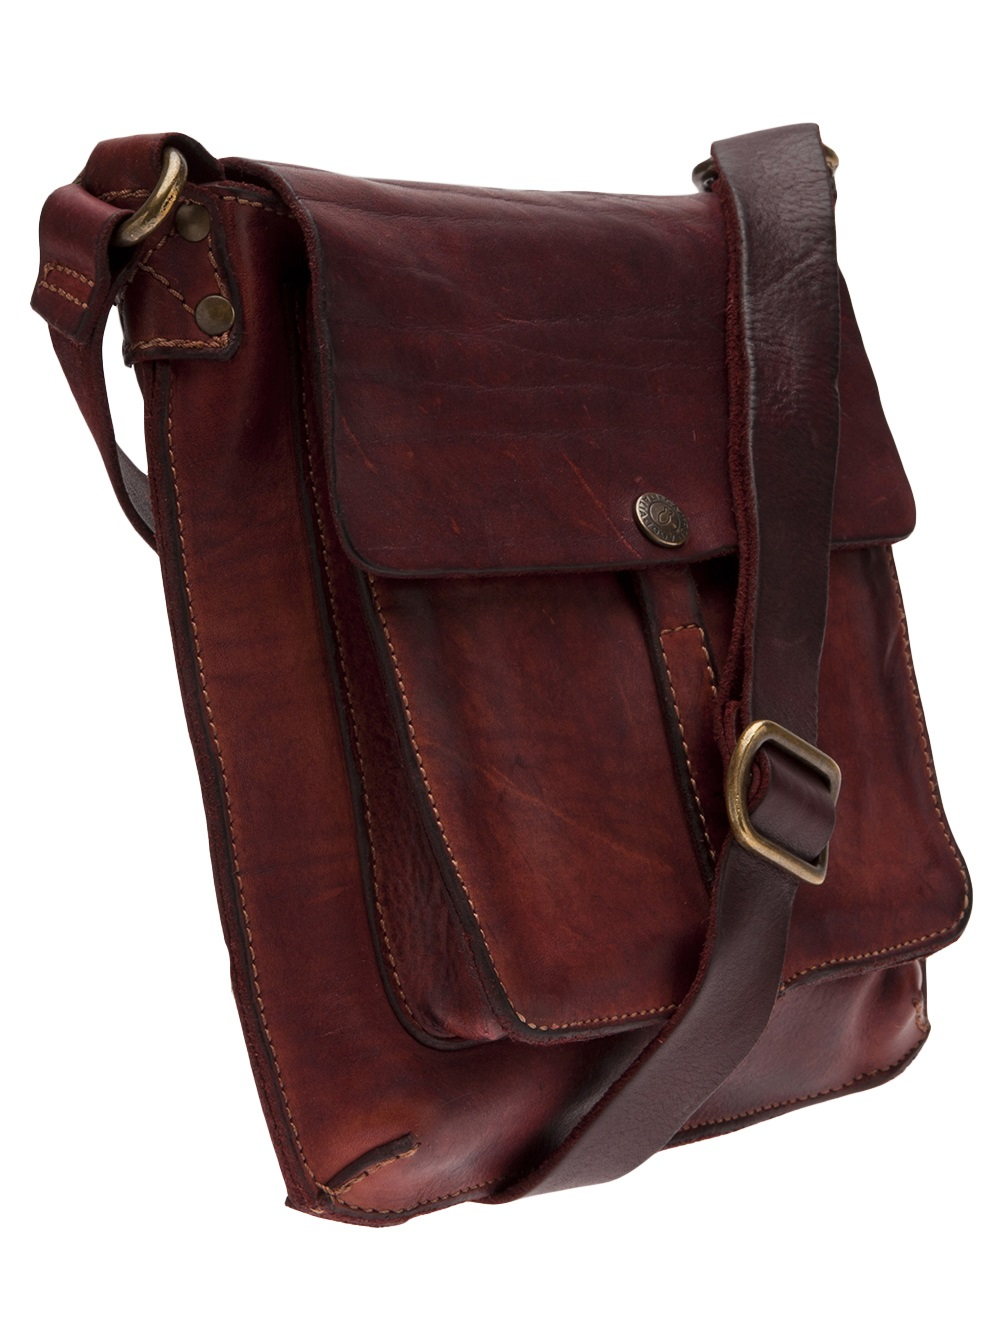 Campomaggi Small Square Shoulder Bag in Red | Lyst